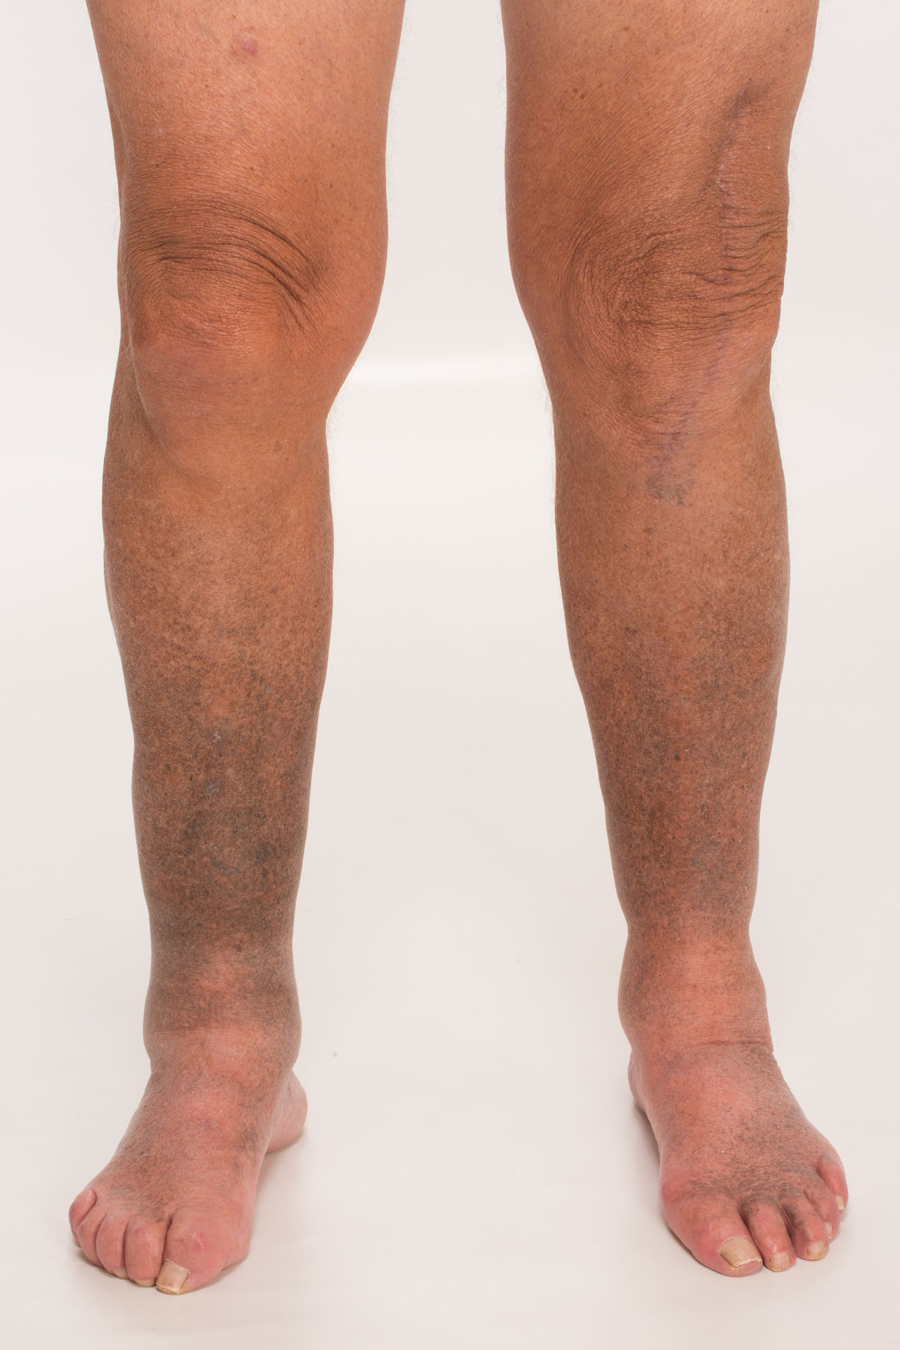 A 77-Year-Old with Cutaneous Hyperpigmentation and Lower ...